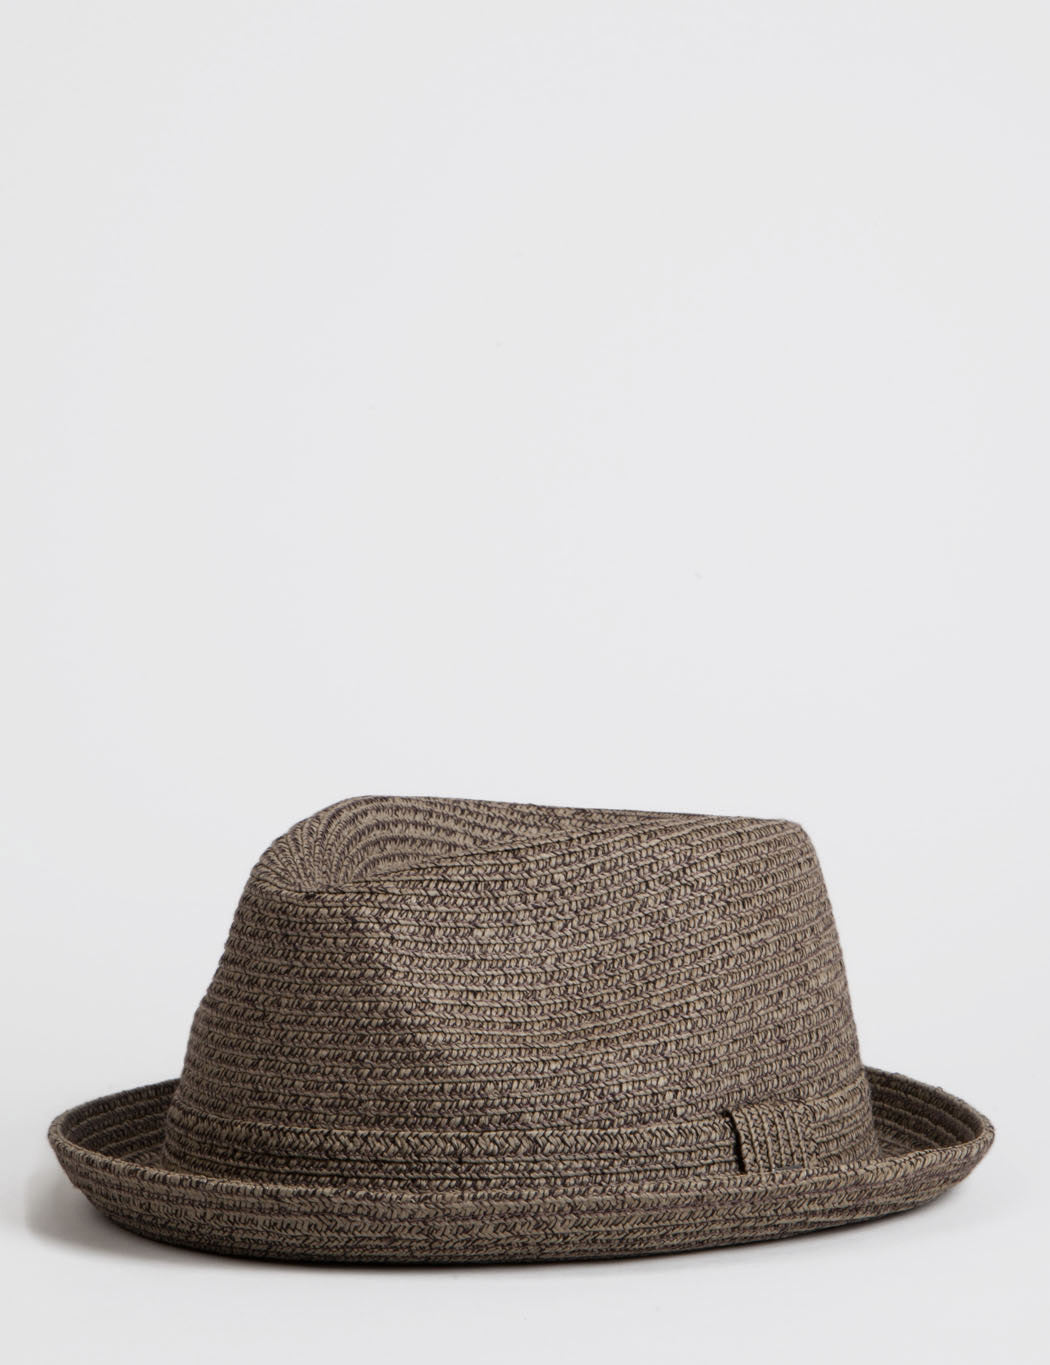 Bailey Billy Light Trilby Hat - Brown